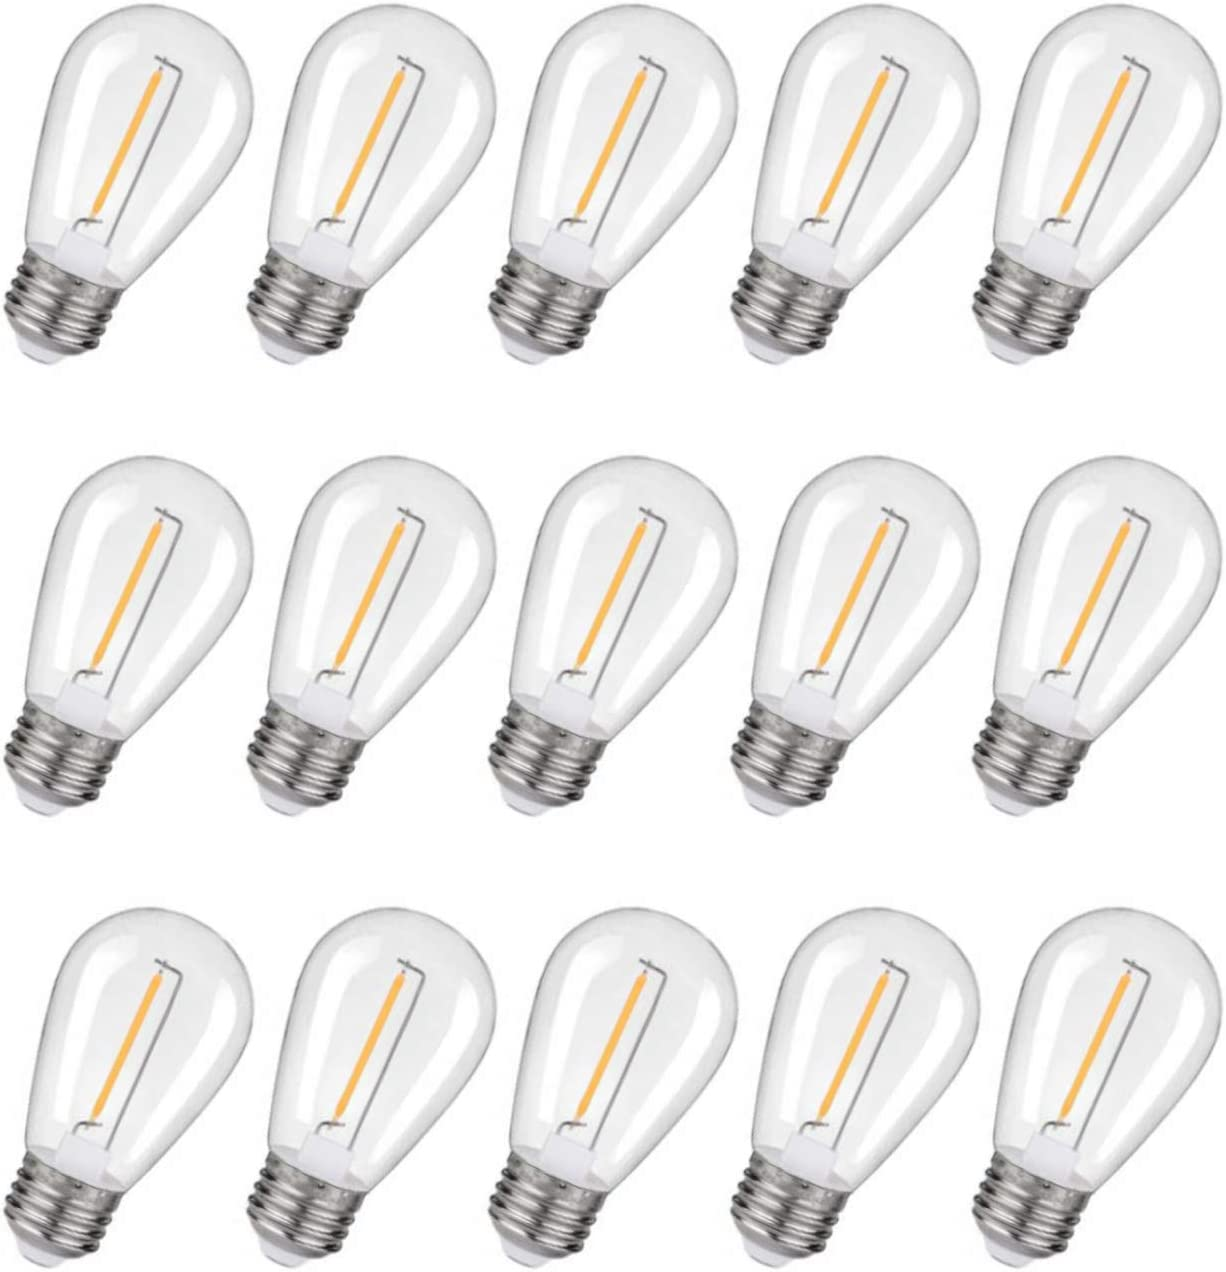 Shatterproof &Waterproof LED S14 String Light Replacement Bulbs, E26 Base Edison Bulbs Equivalent to 11 W, Fits for Commercial Outdoor Patio Garden Vintage Lights, 2200K Warm White(15 Pack)